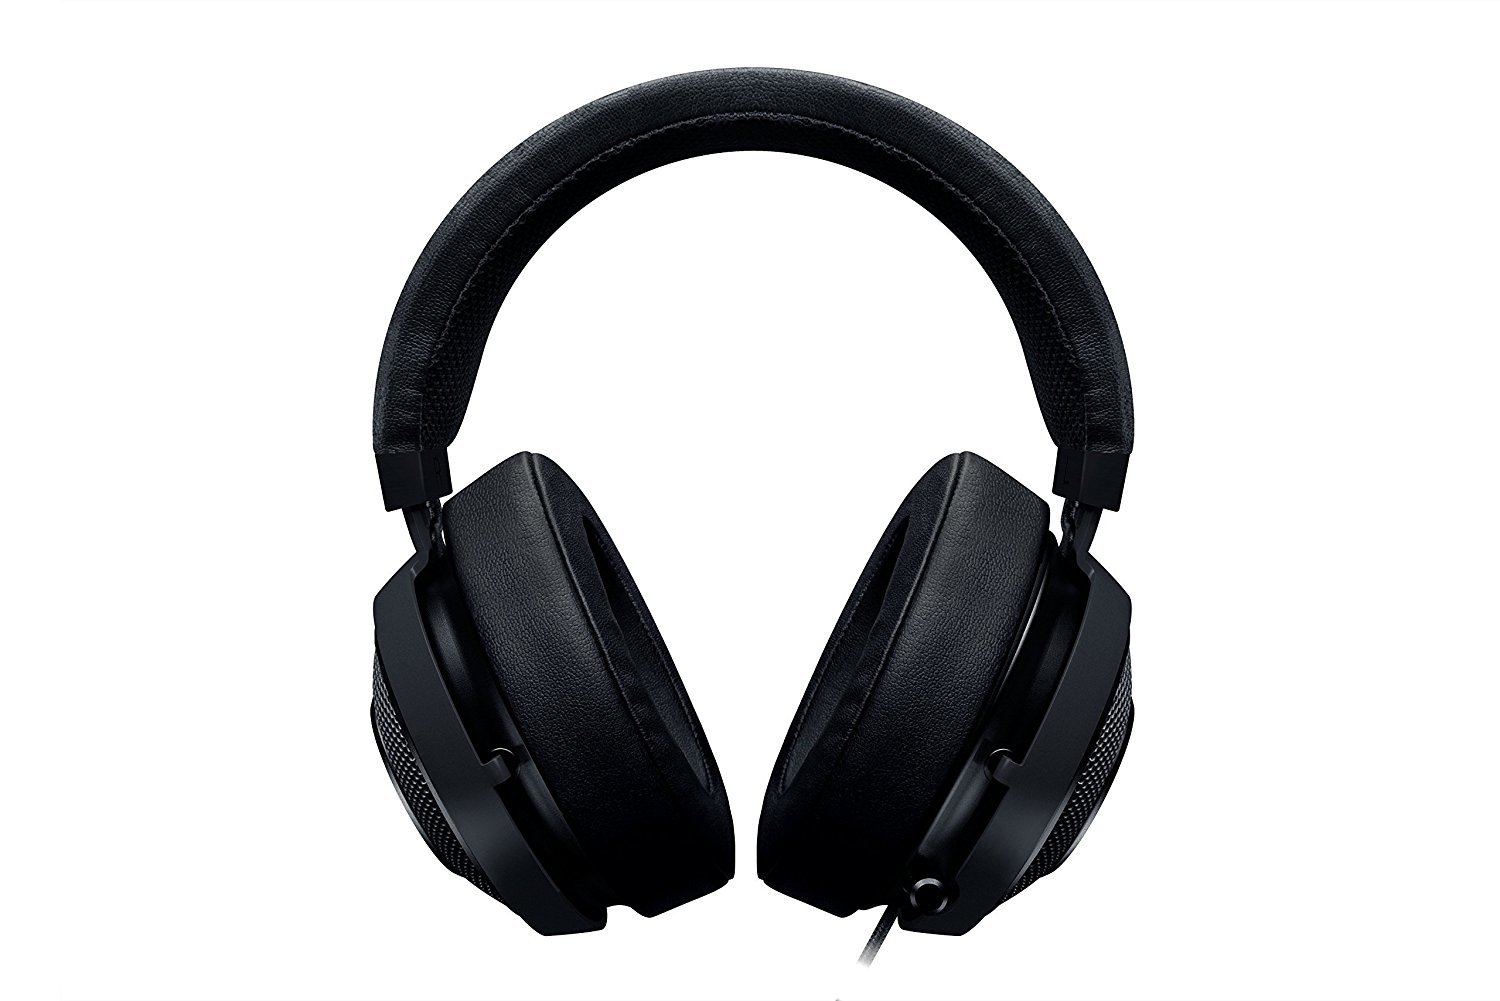 Razer Kraken Pro V2 Gaming Headset - Oval Black for  image